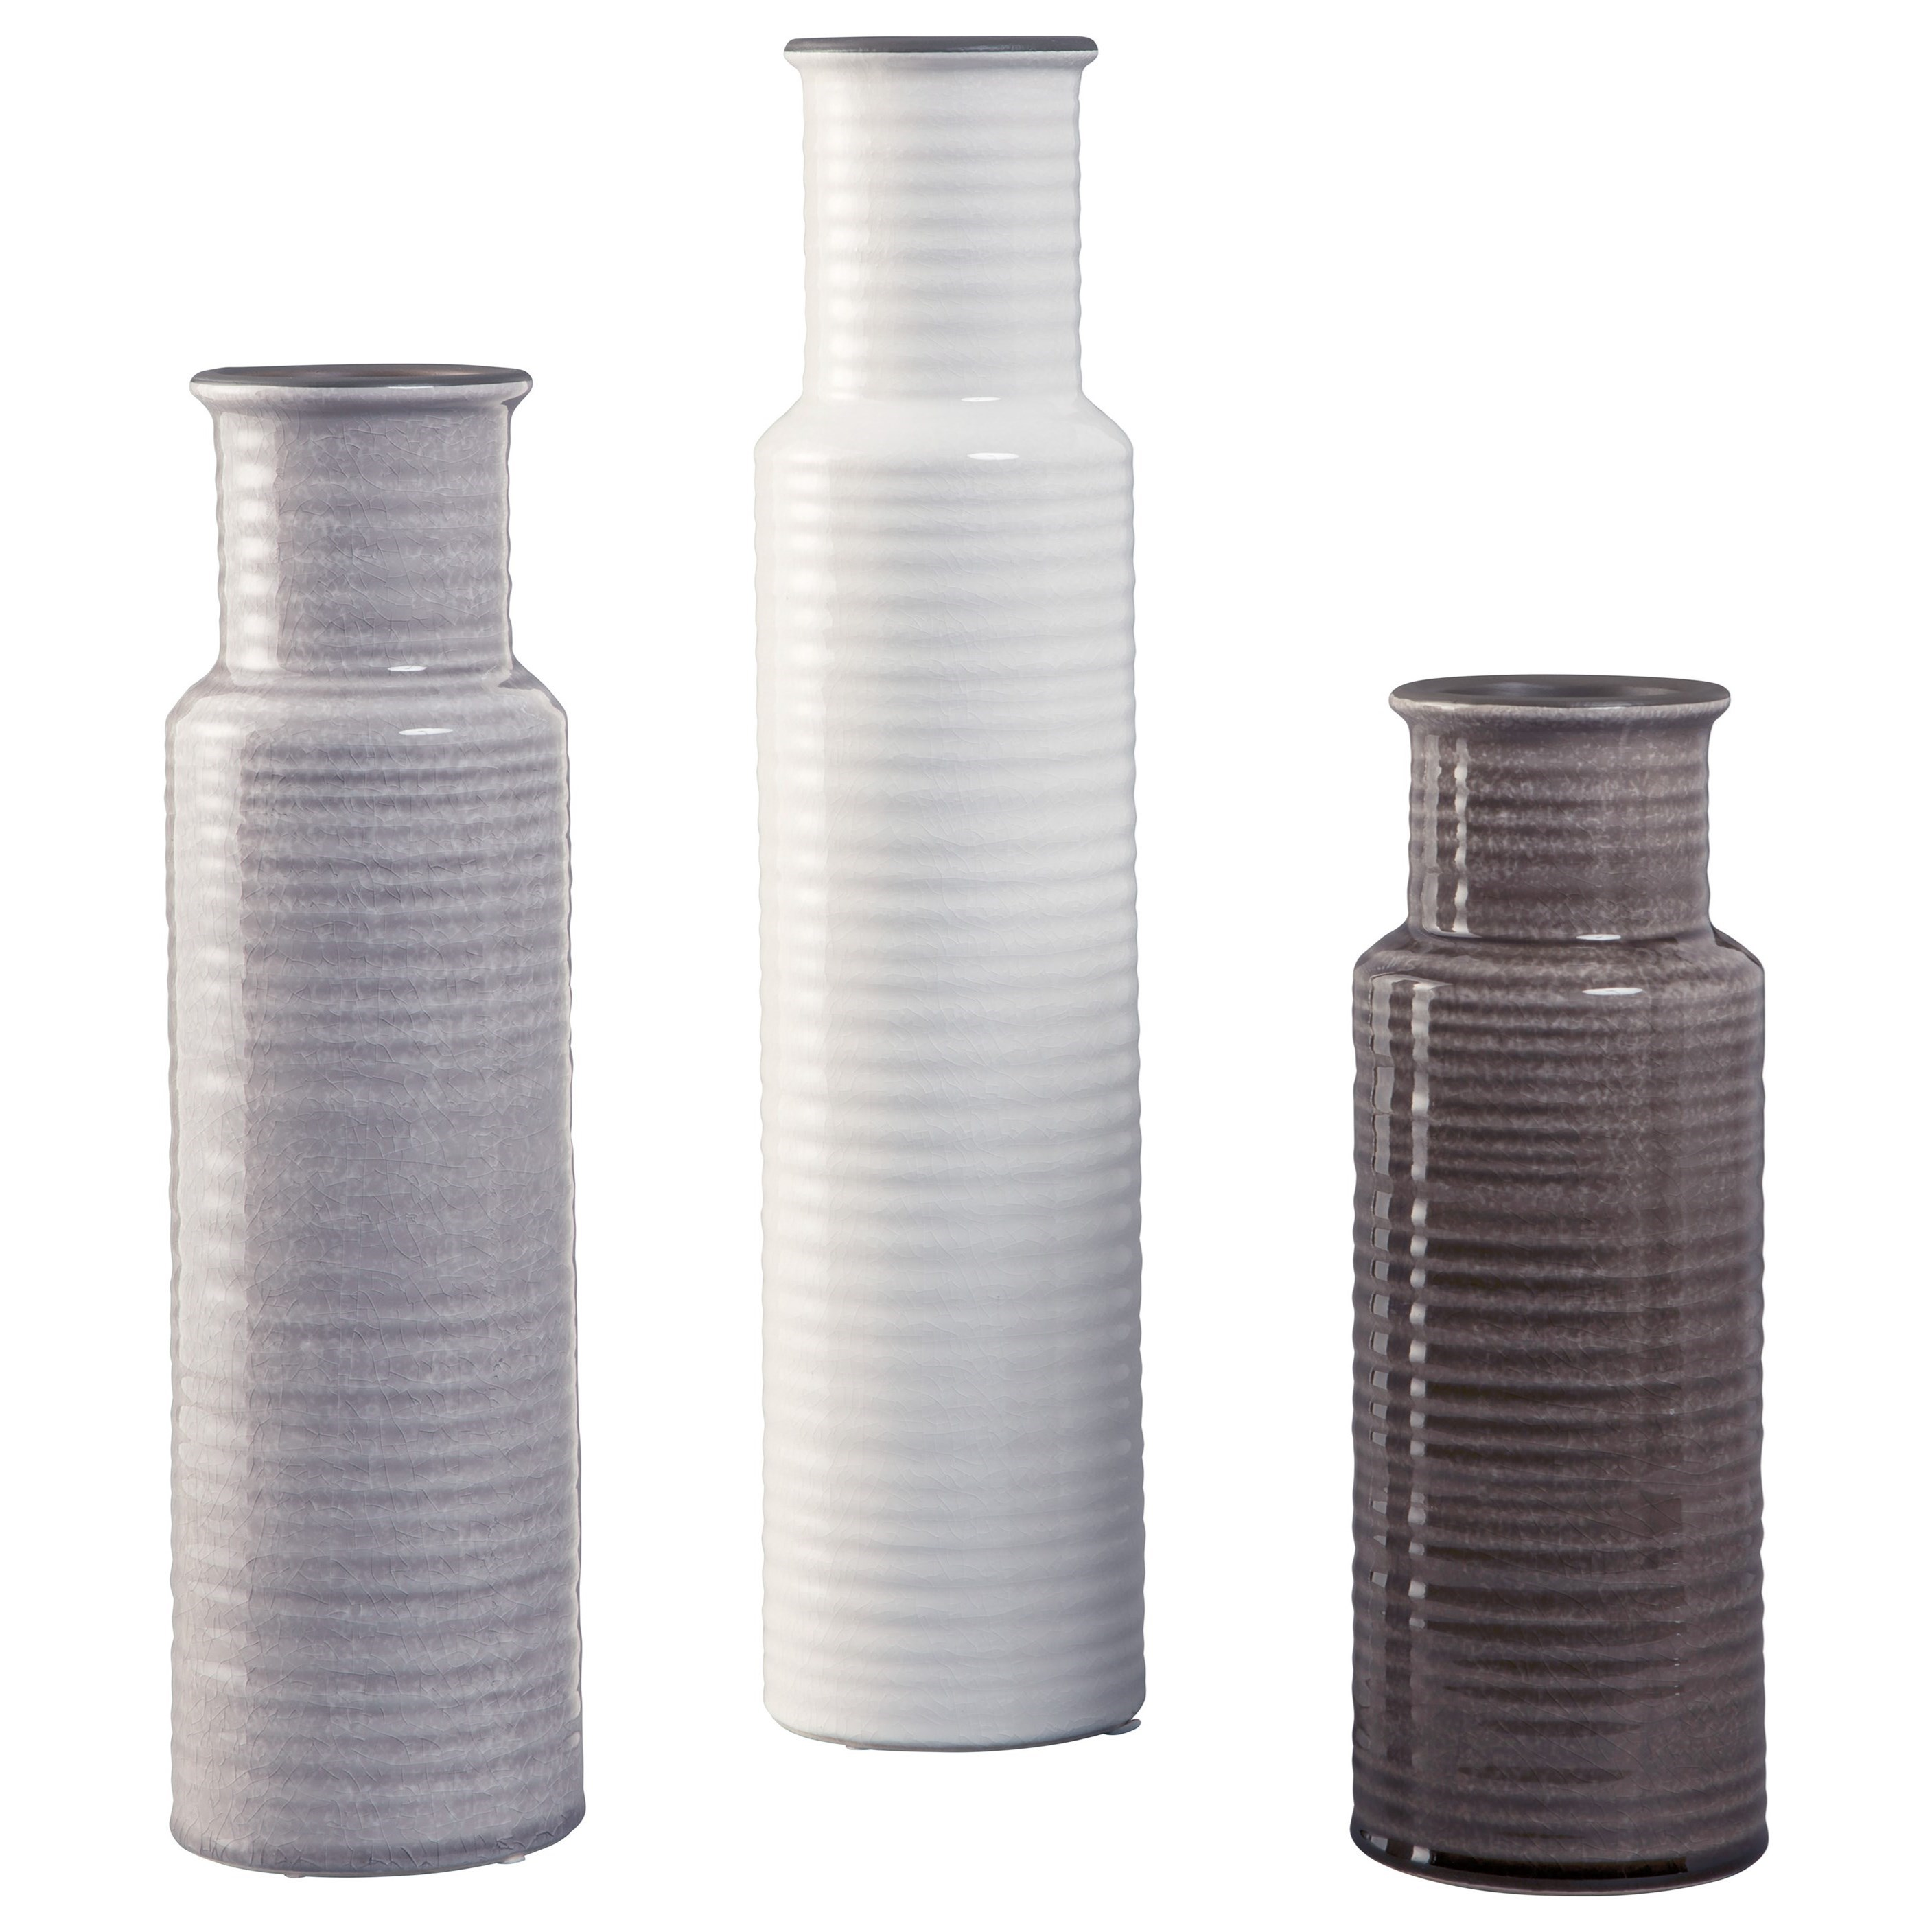 Accents Deus Gray/White/Brown Vase Set by Signature Design by Ashley at Coconis Furniture & Mattress 1st